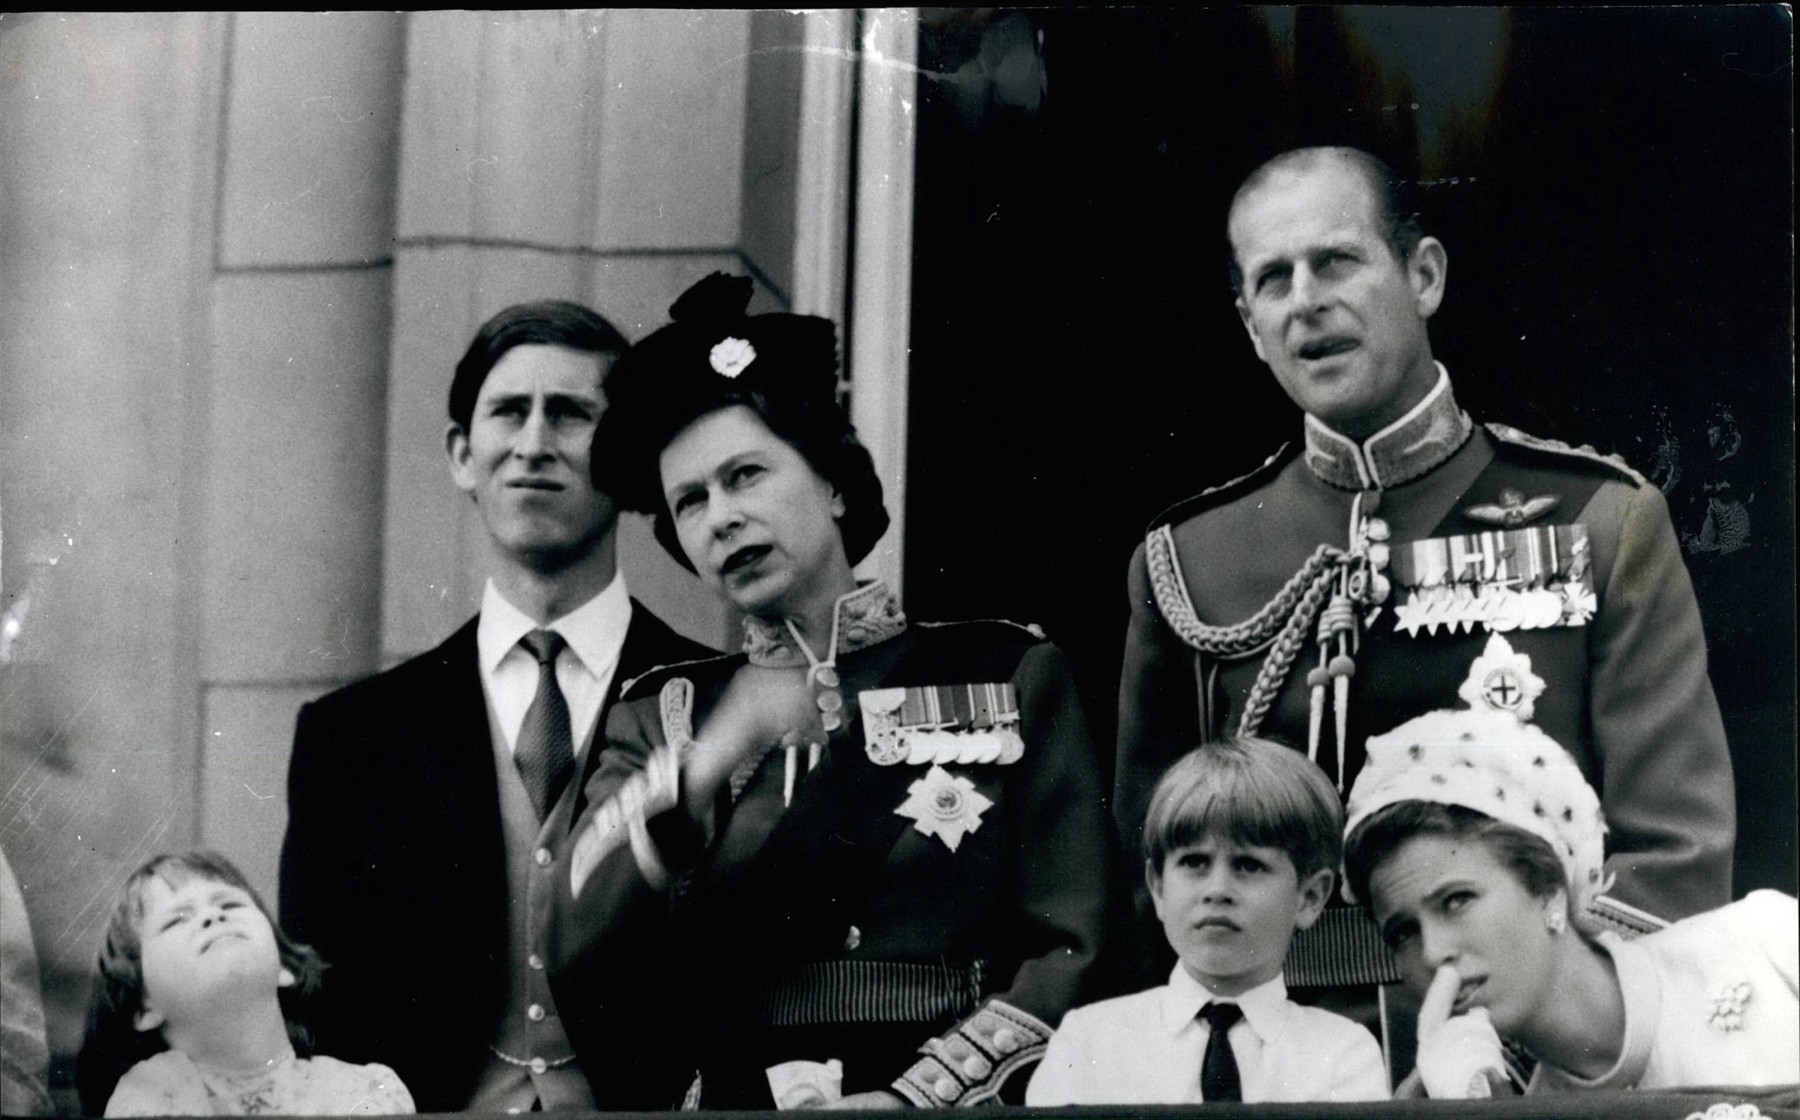 Jun. 13, 1970 - June 13th 1970 Queen¢¬¢s Birthday Celebrations ¢¬ The Queen celebrated her official birthday today with the traditional ceremony of the Trooping the Colour on Horse Guards Parade by the 2nd Battalion Scots Guards. Photo Shows: The Queen, Prince Philip, Prince Charles, Princess Anne, Prince Edward watch the fly past from the Balcony of Buckingham Palace. (Credit Image: Keystone Pictures USA/ZUMAPRESS),Image: 338554686, License: Rights-managed, Restrictions: Contributor country restriction: Worldwide, Worldwide, Worldwide, Worldwide, Worldwide, Worldwide. Contributor usage restriction: Advertising and promotion, Consumer goods, Direct mail and brochures, Indoor display, Internal business usage, Commercial electronic. Contributor media restriction: {5A0C4748-B9FE-405C-8D78-7320C4B0CD24}, {5A0C4748-B9FE-405C-8D78-7320C4B0CD24}, {5A0C4748-B9FE-405C-8D78-7320C4B0CD24}, {5A0C4748-B9FE-405C-8D78-7320C4B0CD24}, {5A0C4748-B9FE-405C-8D78-7320C4B0CD24}, {5A0C4748-B9FE-405C-8D78-7320C4B0CD24}., Model Release: no, Credit line: Keystone Pictures USA / Alamy / Alamy / Profimedia